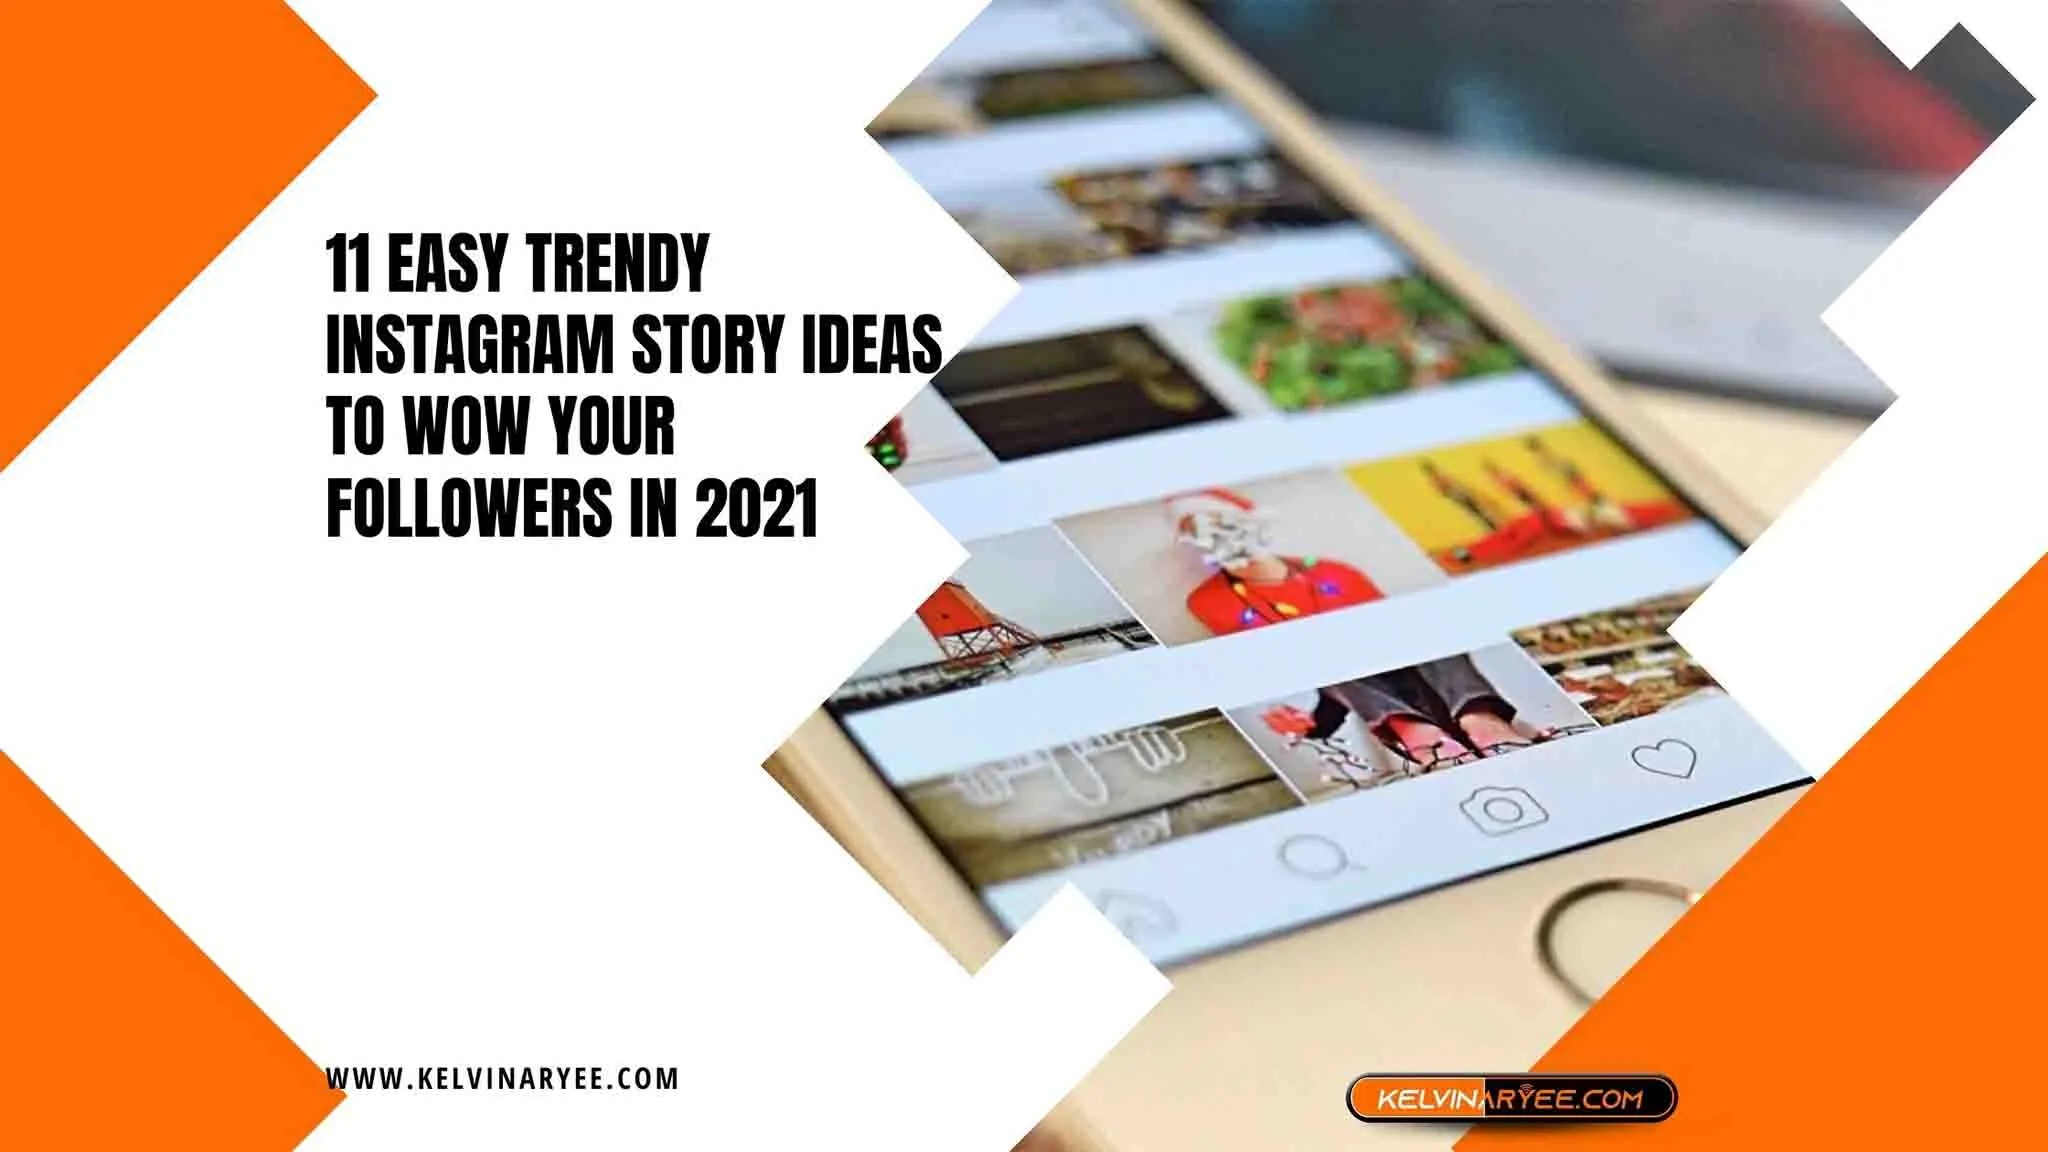 You are currently viewing 11 Easy Trendy Instagram Story Ideas to Wow Your Followers In 2021